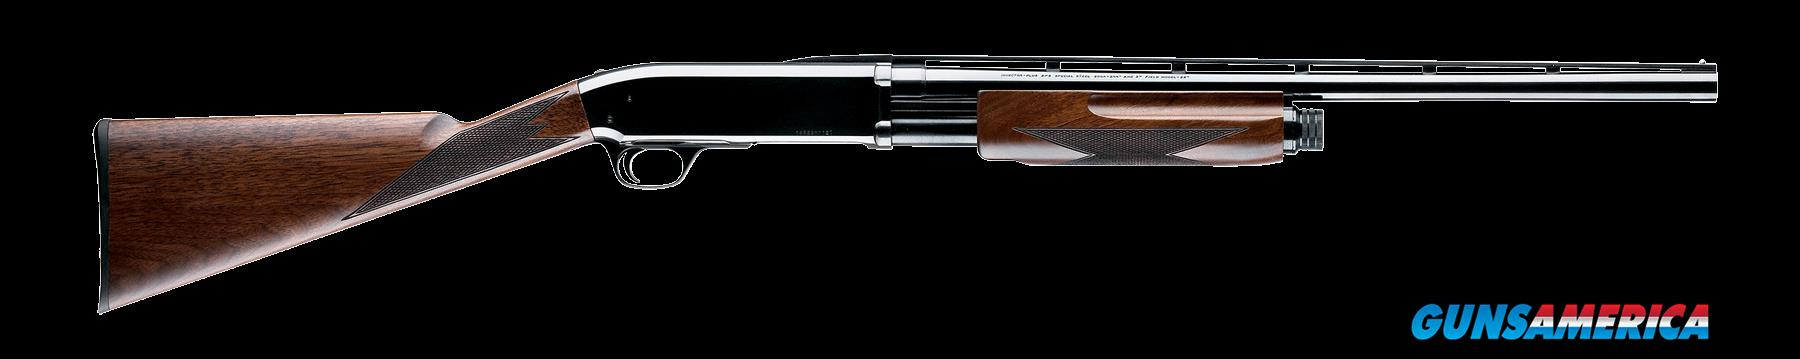 "Browning 012216307 BPS 12 Gauge 22"" 3"" Blk Walnut Stk Blued High Polish Rcvr  Guns > Shotguns > B Misc Shotguns"